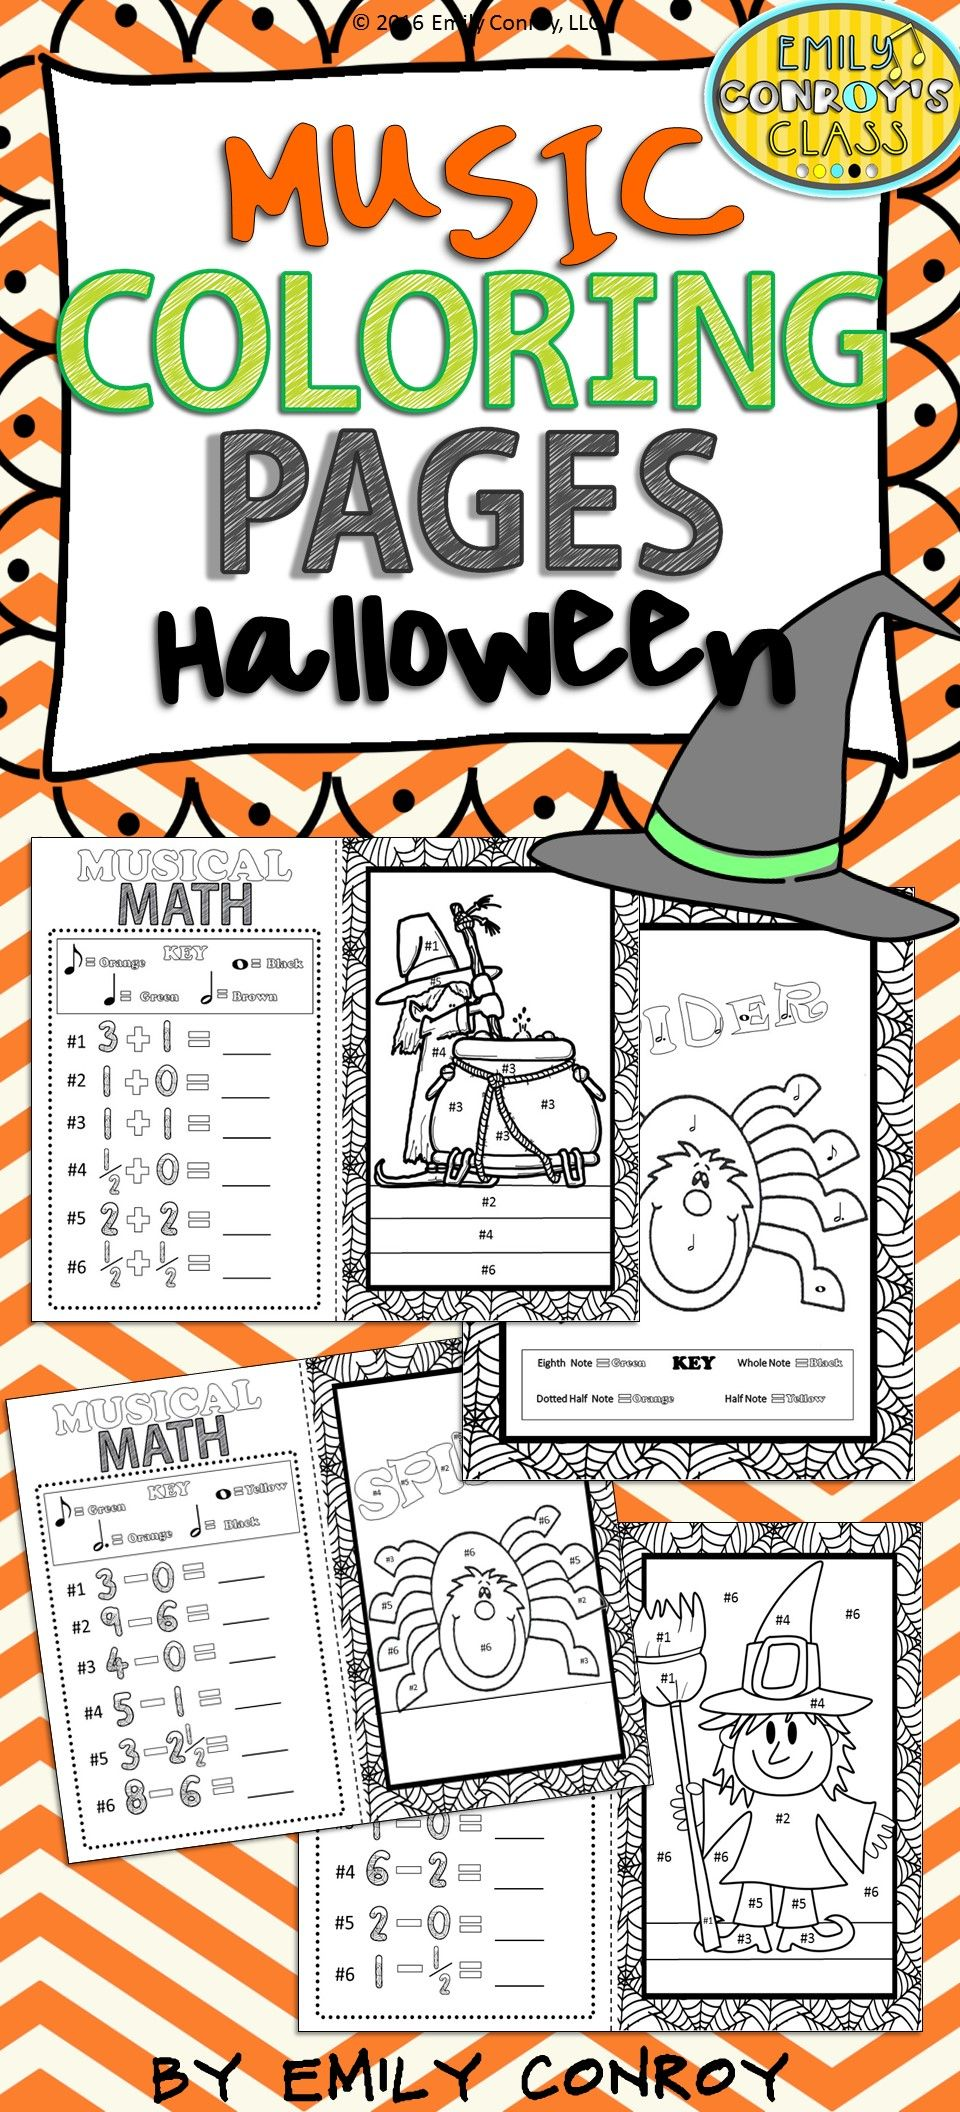 Music Coloring Pages (16 Halloween Music Coloring Sheets ...